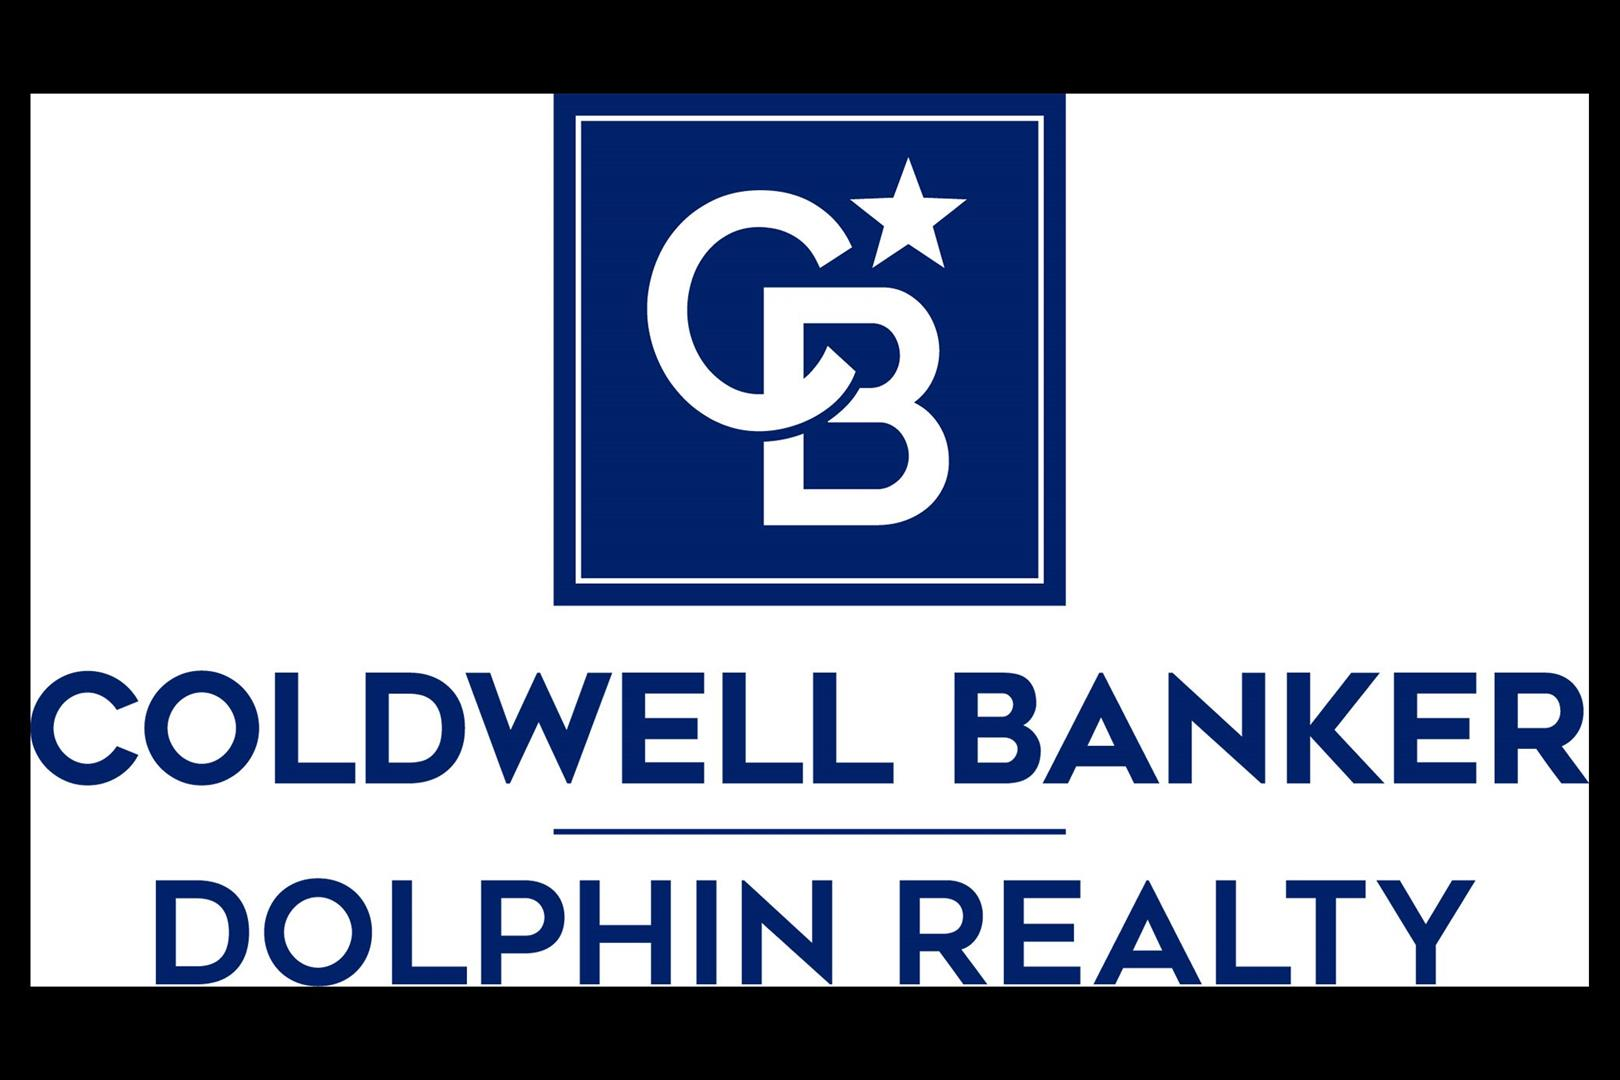 COLDWELL BANKER Dolphin Realty